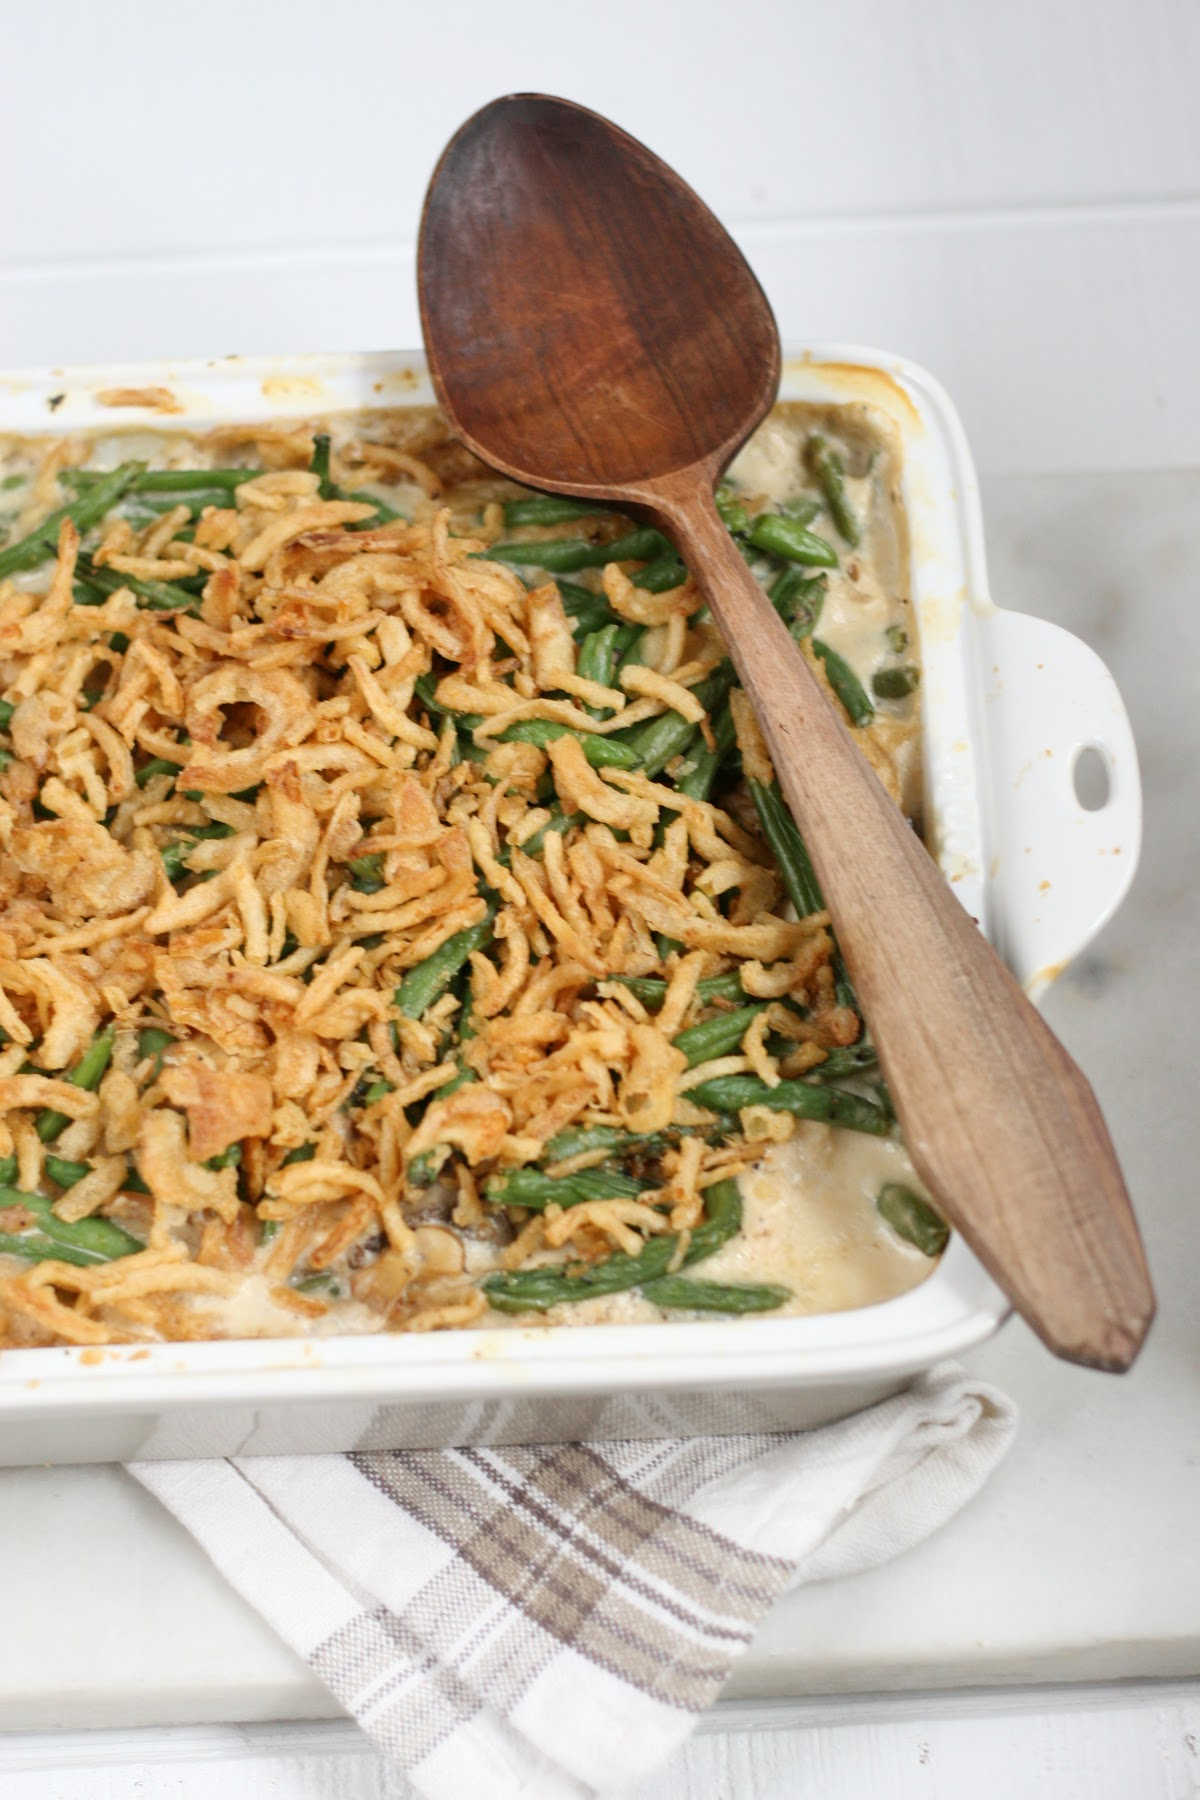 close up of white baking dish with green bean casserole, wooden spoon on right side of dish.